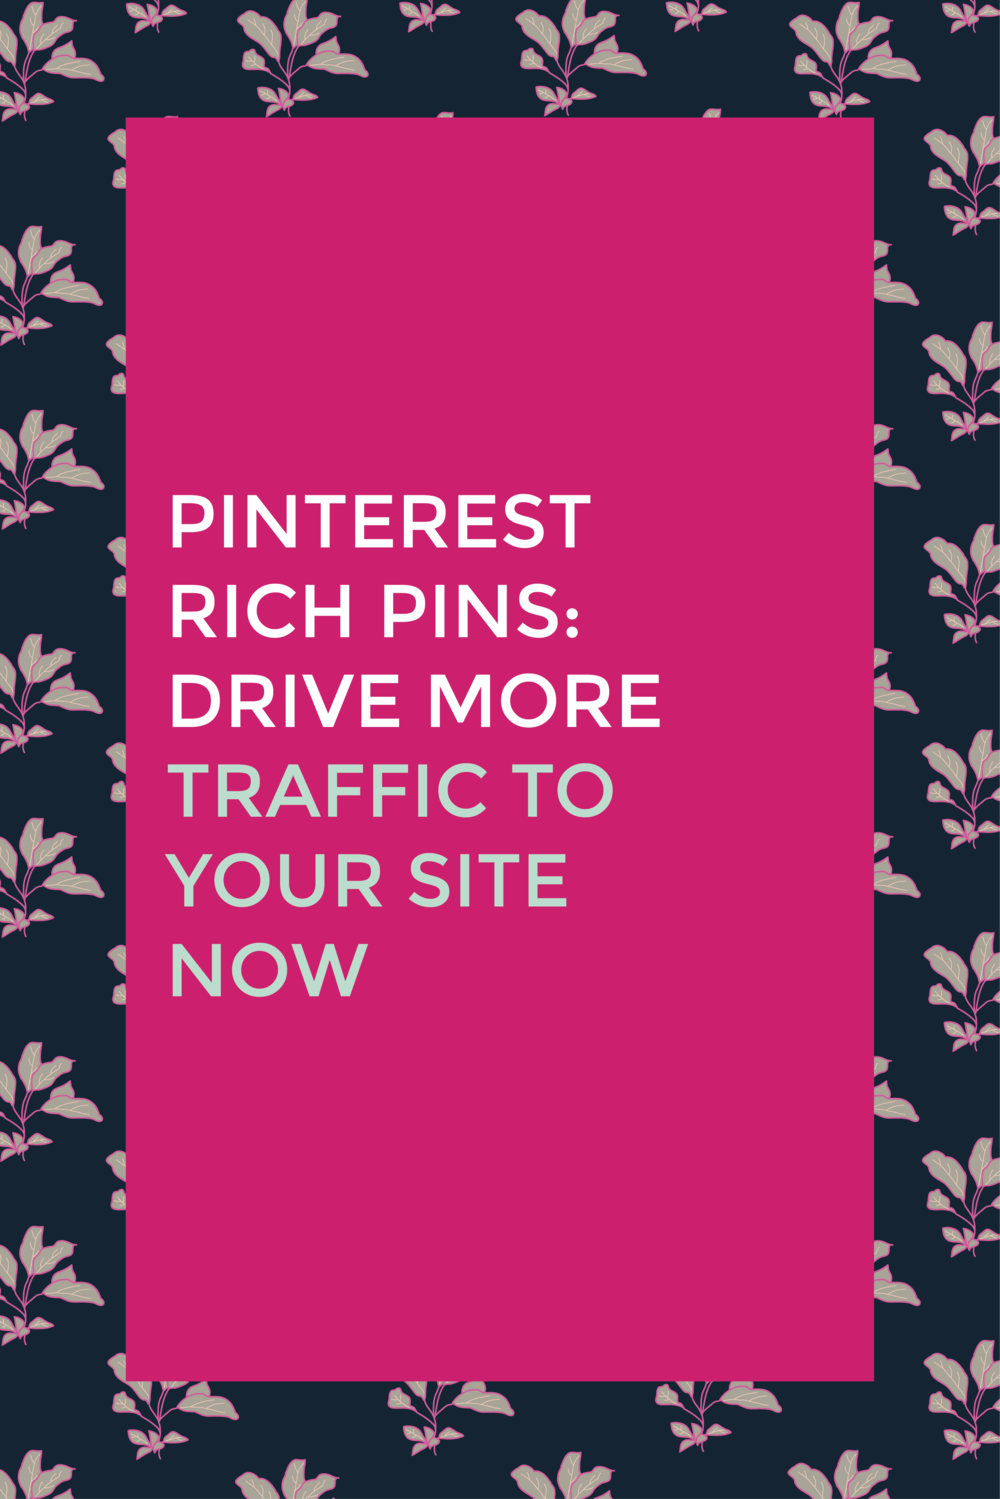 Pinterest Rich Pins Drive More Traffic To Your Site